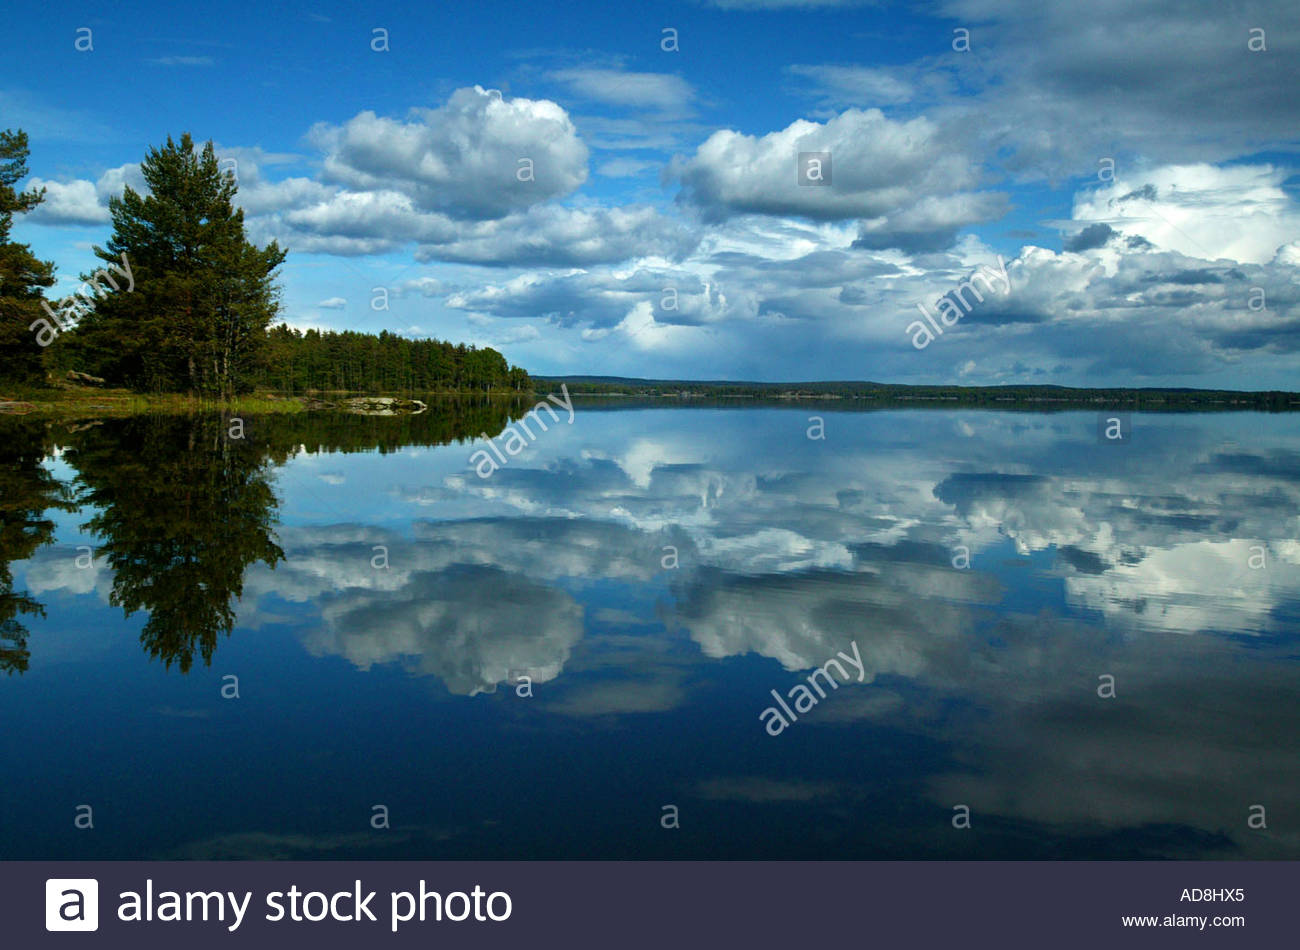 Clouds reflected on a blank water surface in the lake Vansjø, Østfold, Norway. - Stock Image